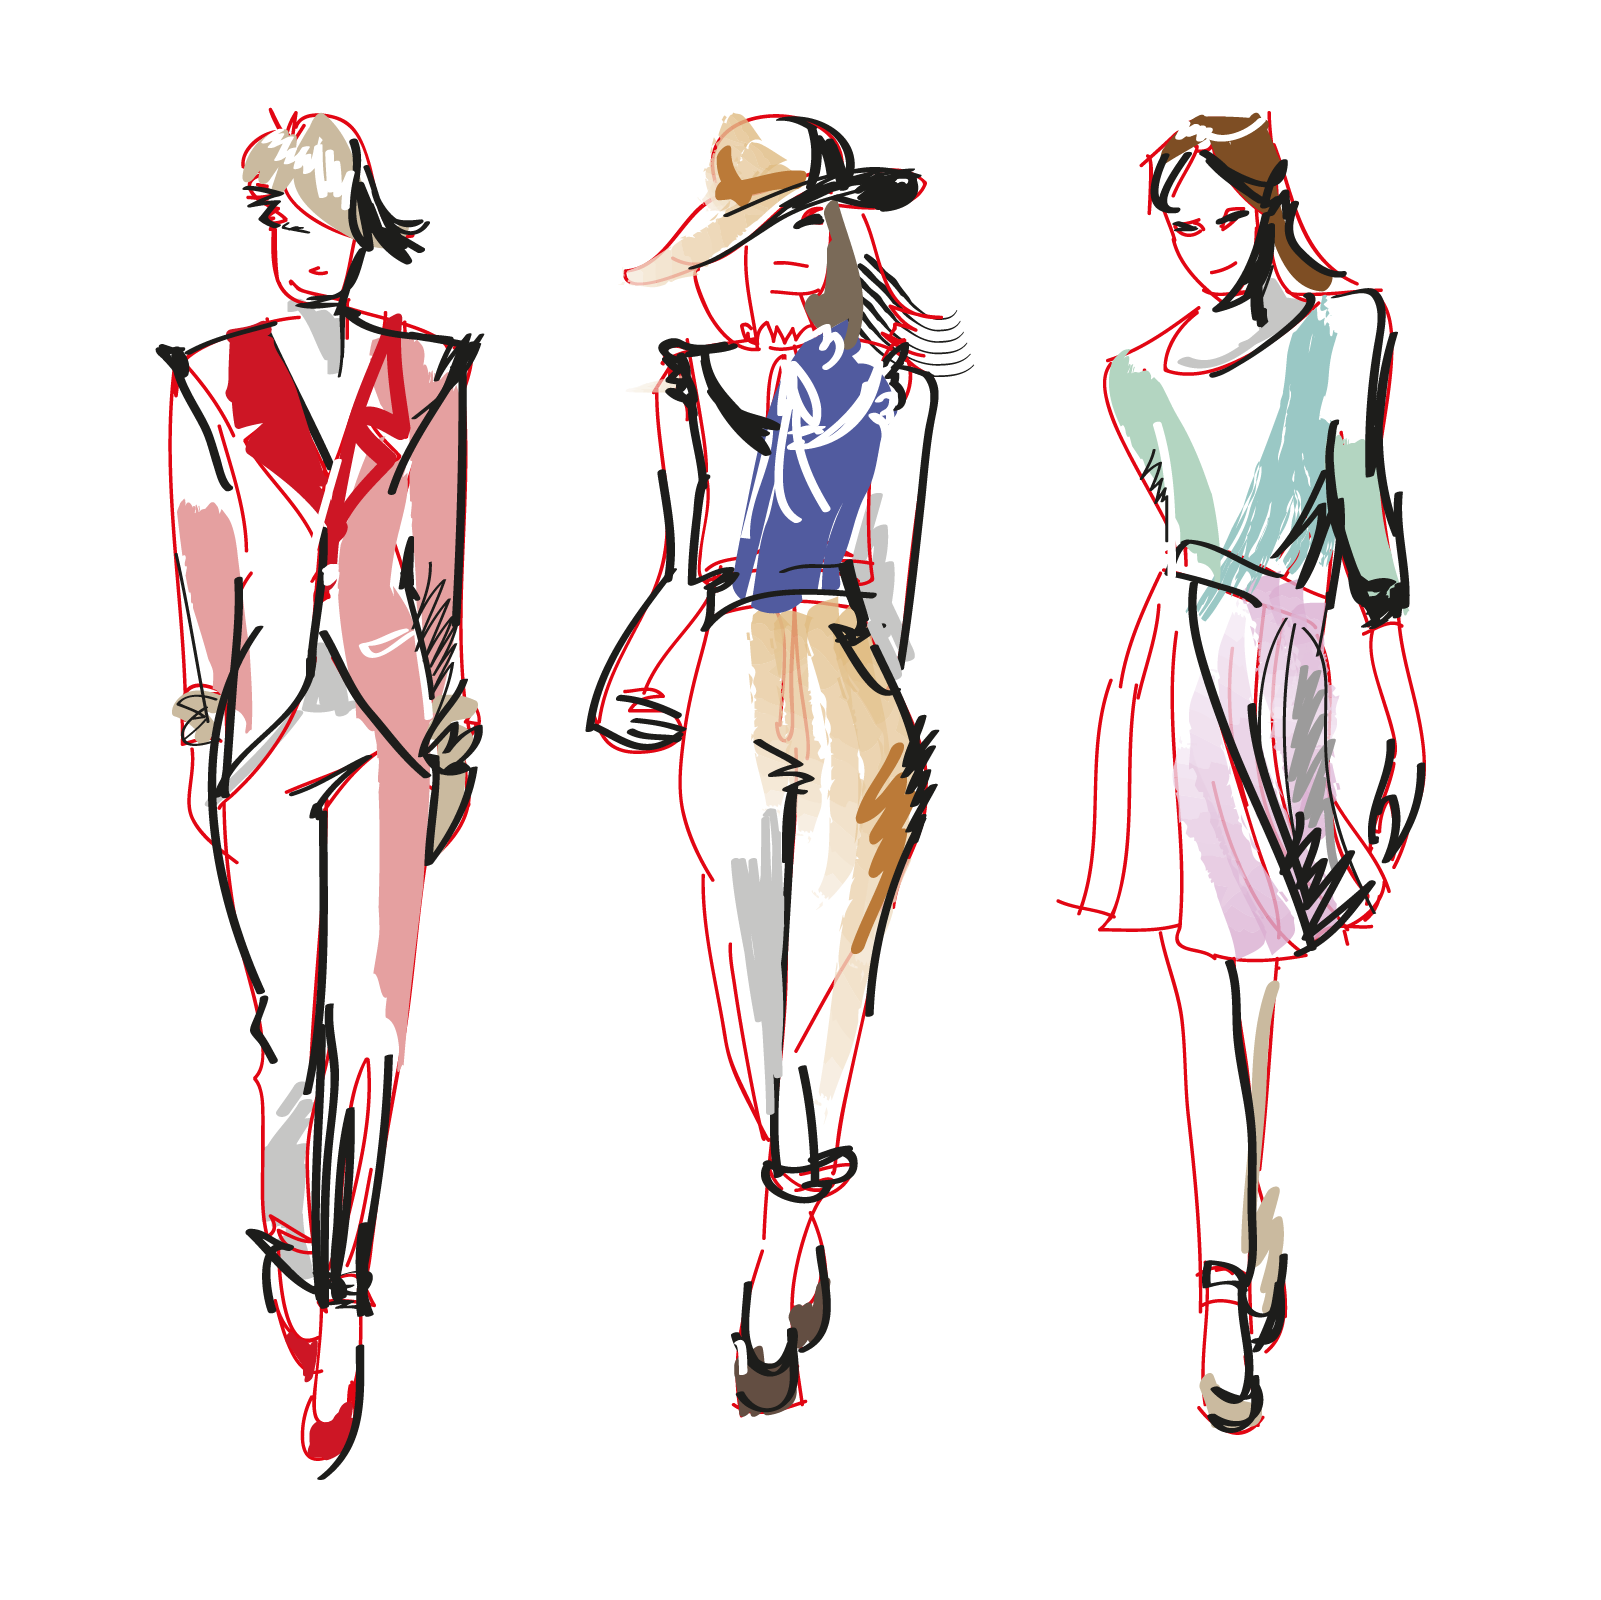 Png transparent professional images. Fashion clipart fashion product